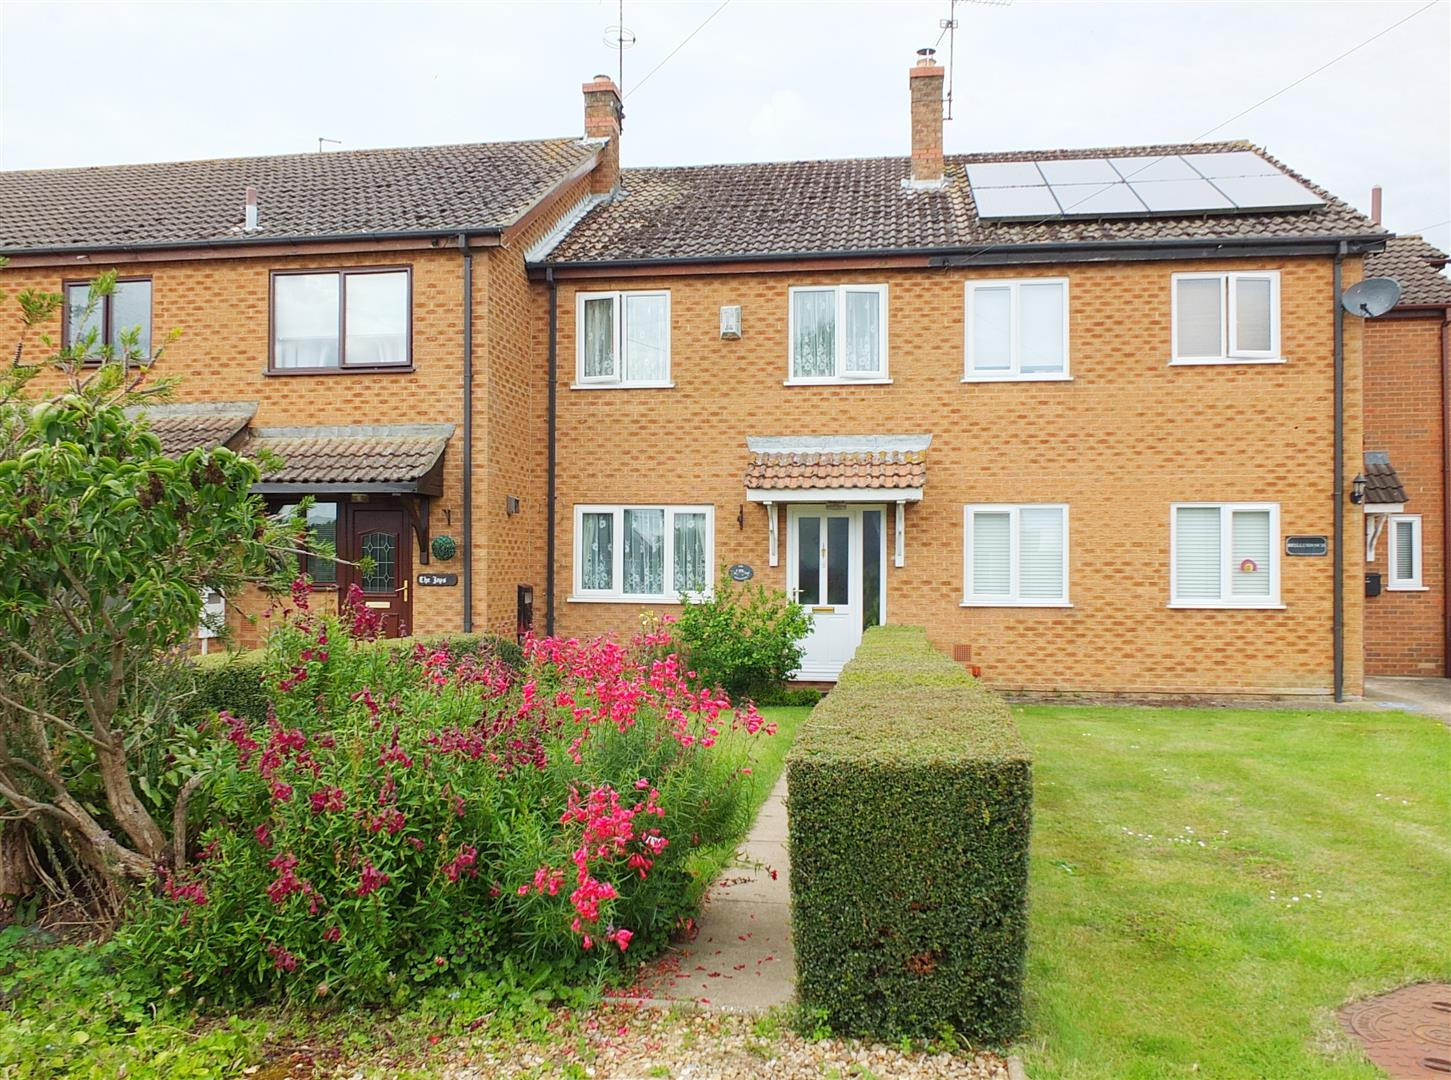 2 bed terraced house for sale in Lutton Spalding, PE12 9LQ  - Property Image 1